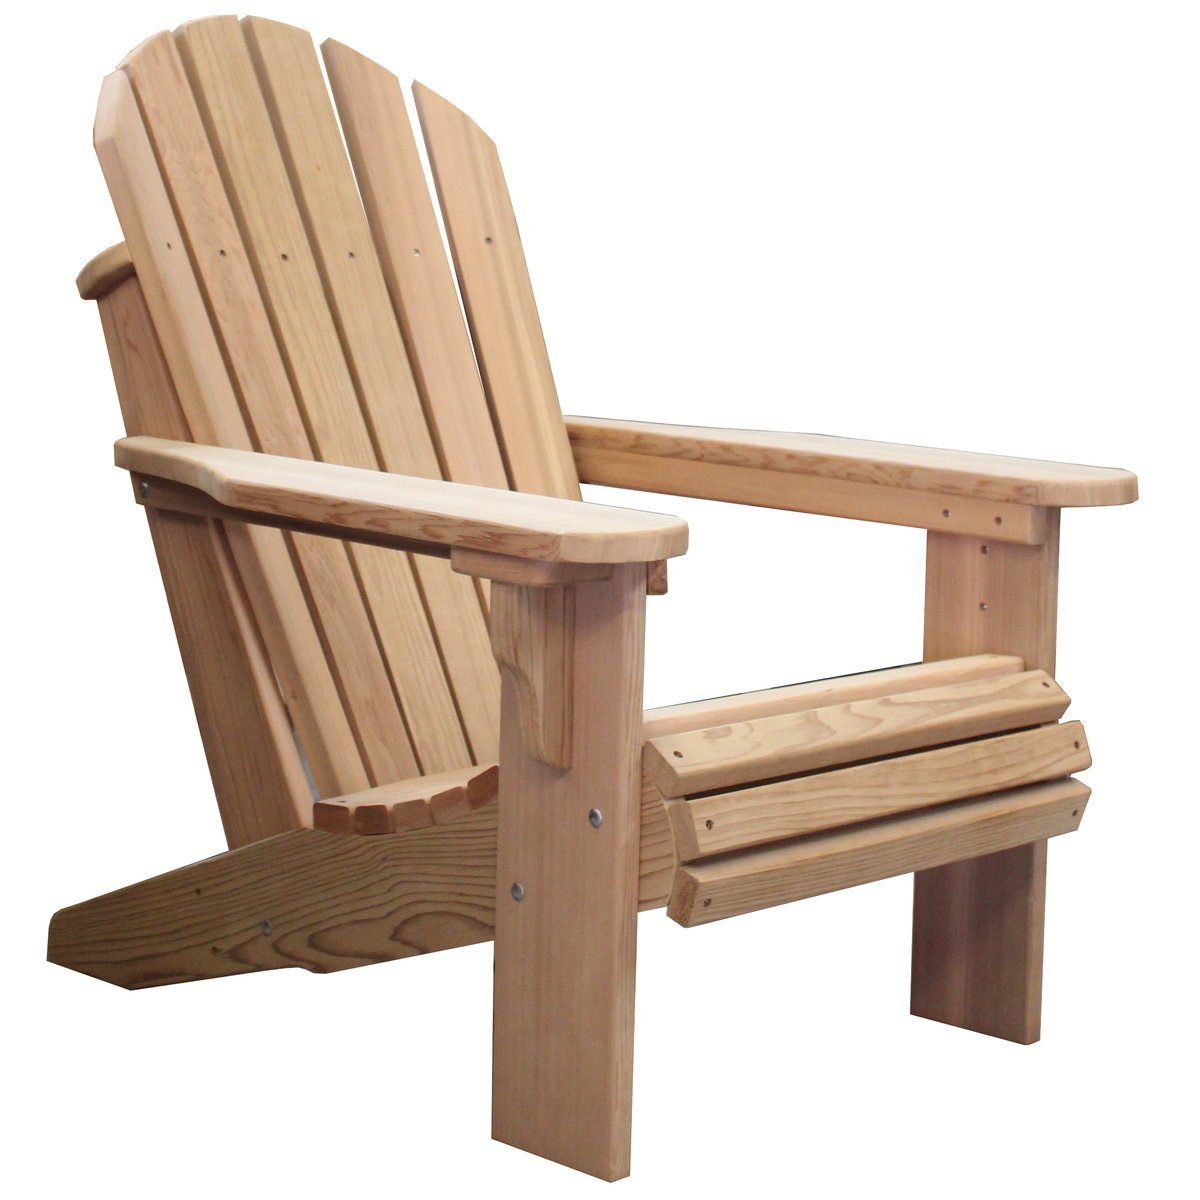 The Best Fitting For Your House  Adirondack Chairs  Home